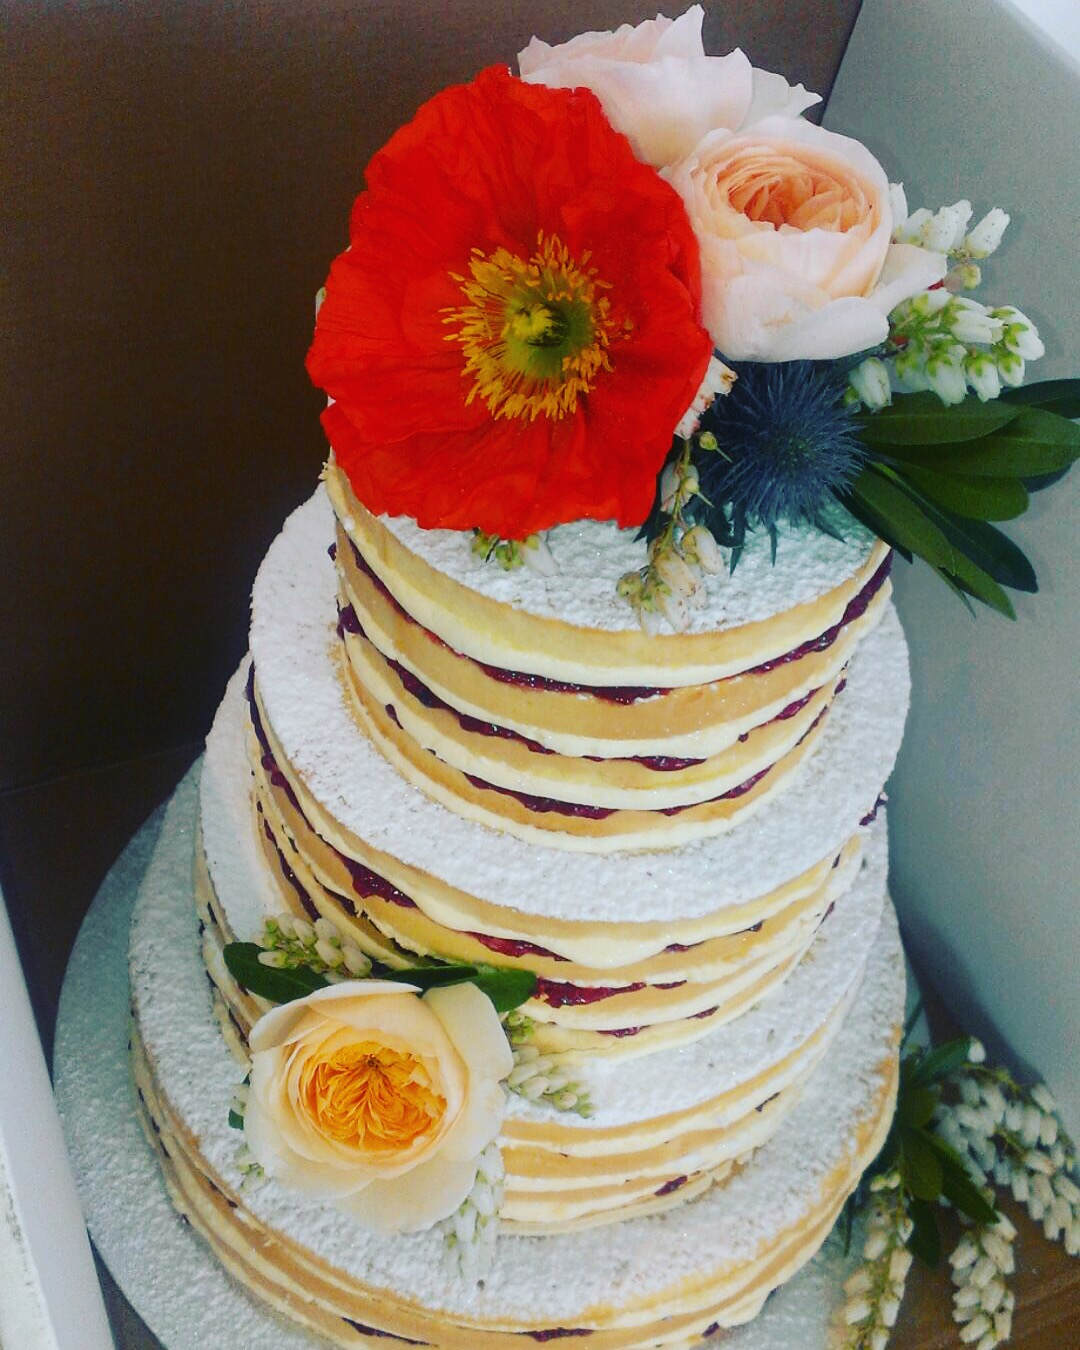 Vanilla Pod 3 tier naked wedding cake with fresh poppies.JPG